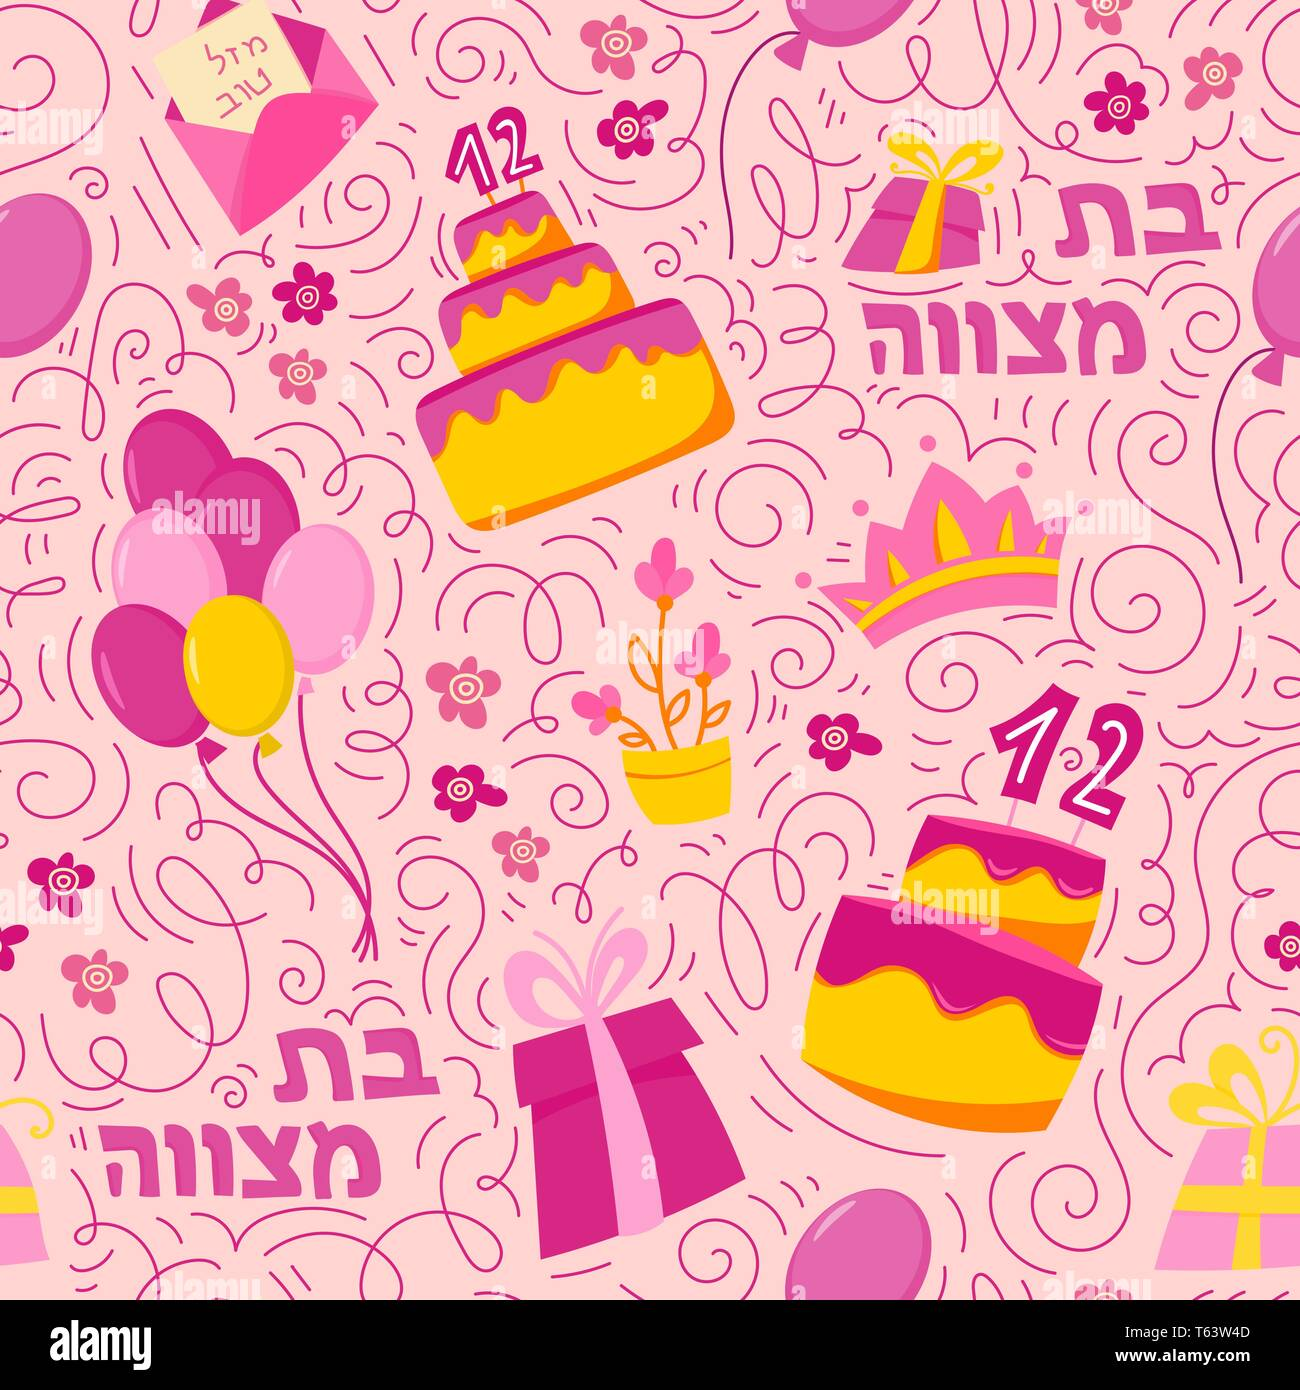 Bat Mitzvah seamless pattern background. Hand drawn vector illustration. Cake with the number 12, balloons, gifts and Hebrew text Bat Mitzhvah. Doodle style. Hebrew text: Bat Mitzhvah - Stock Image